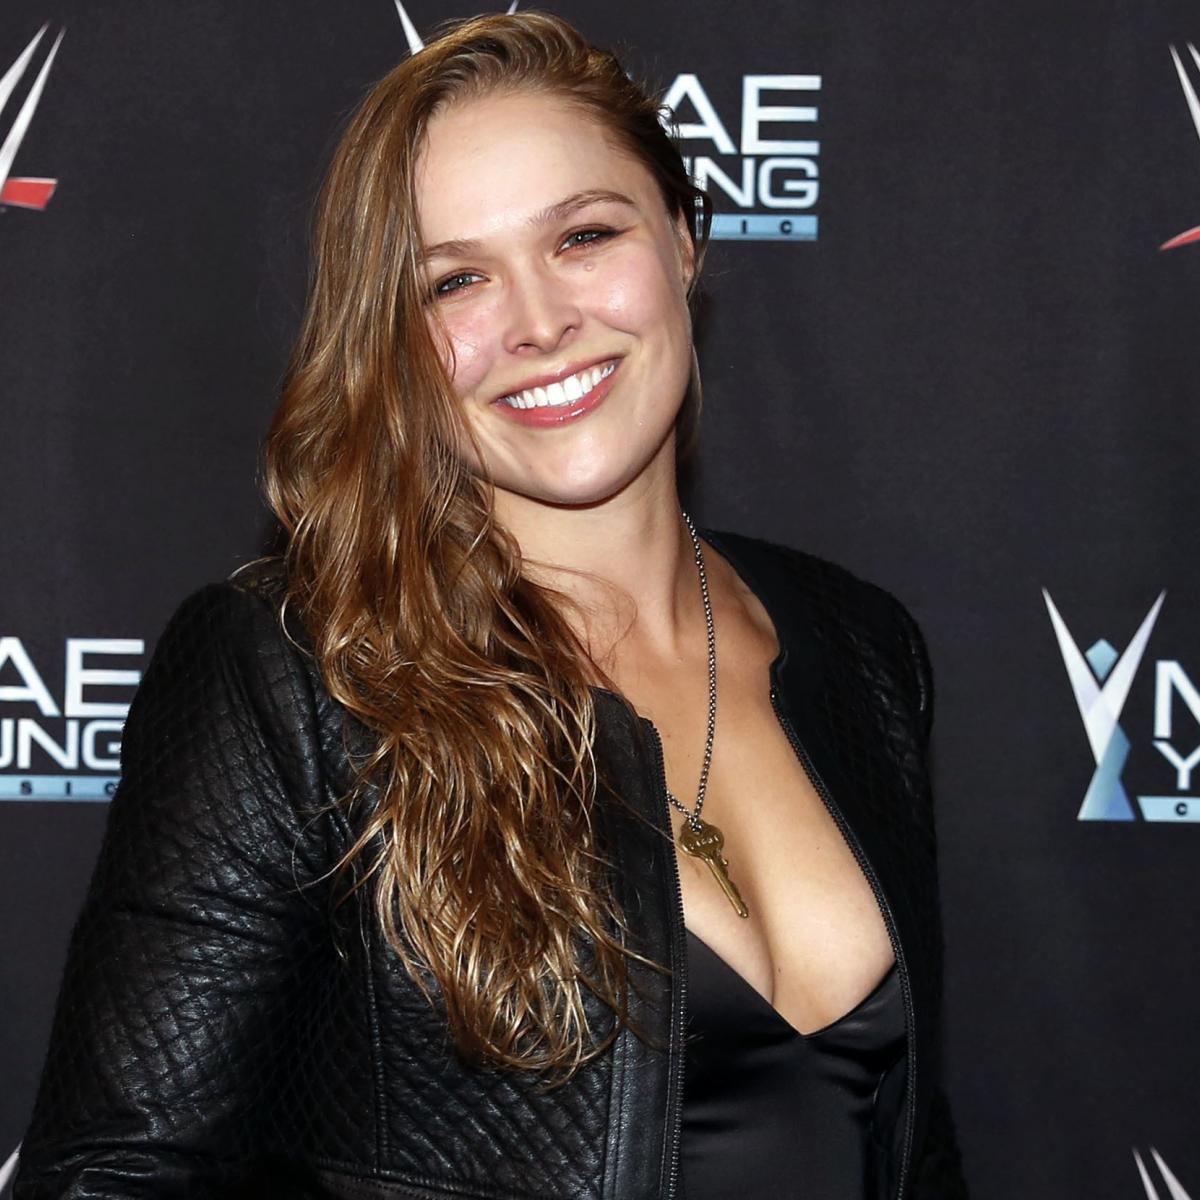 Ronda Rousey on Nikki, Brie Bella: 'They're a Bunch of Untrustworthy Bitches'